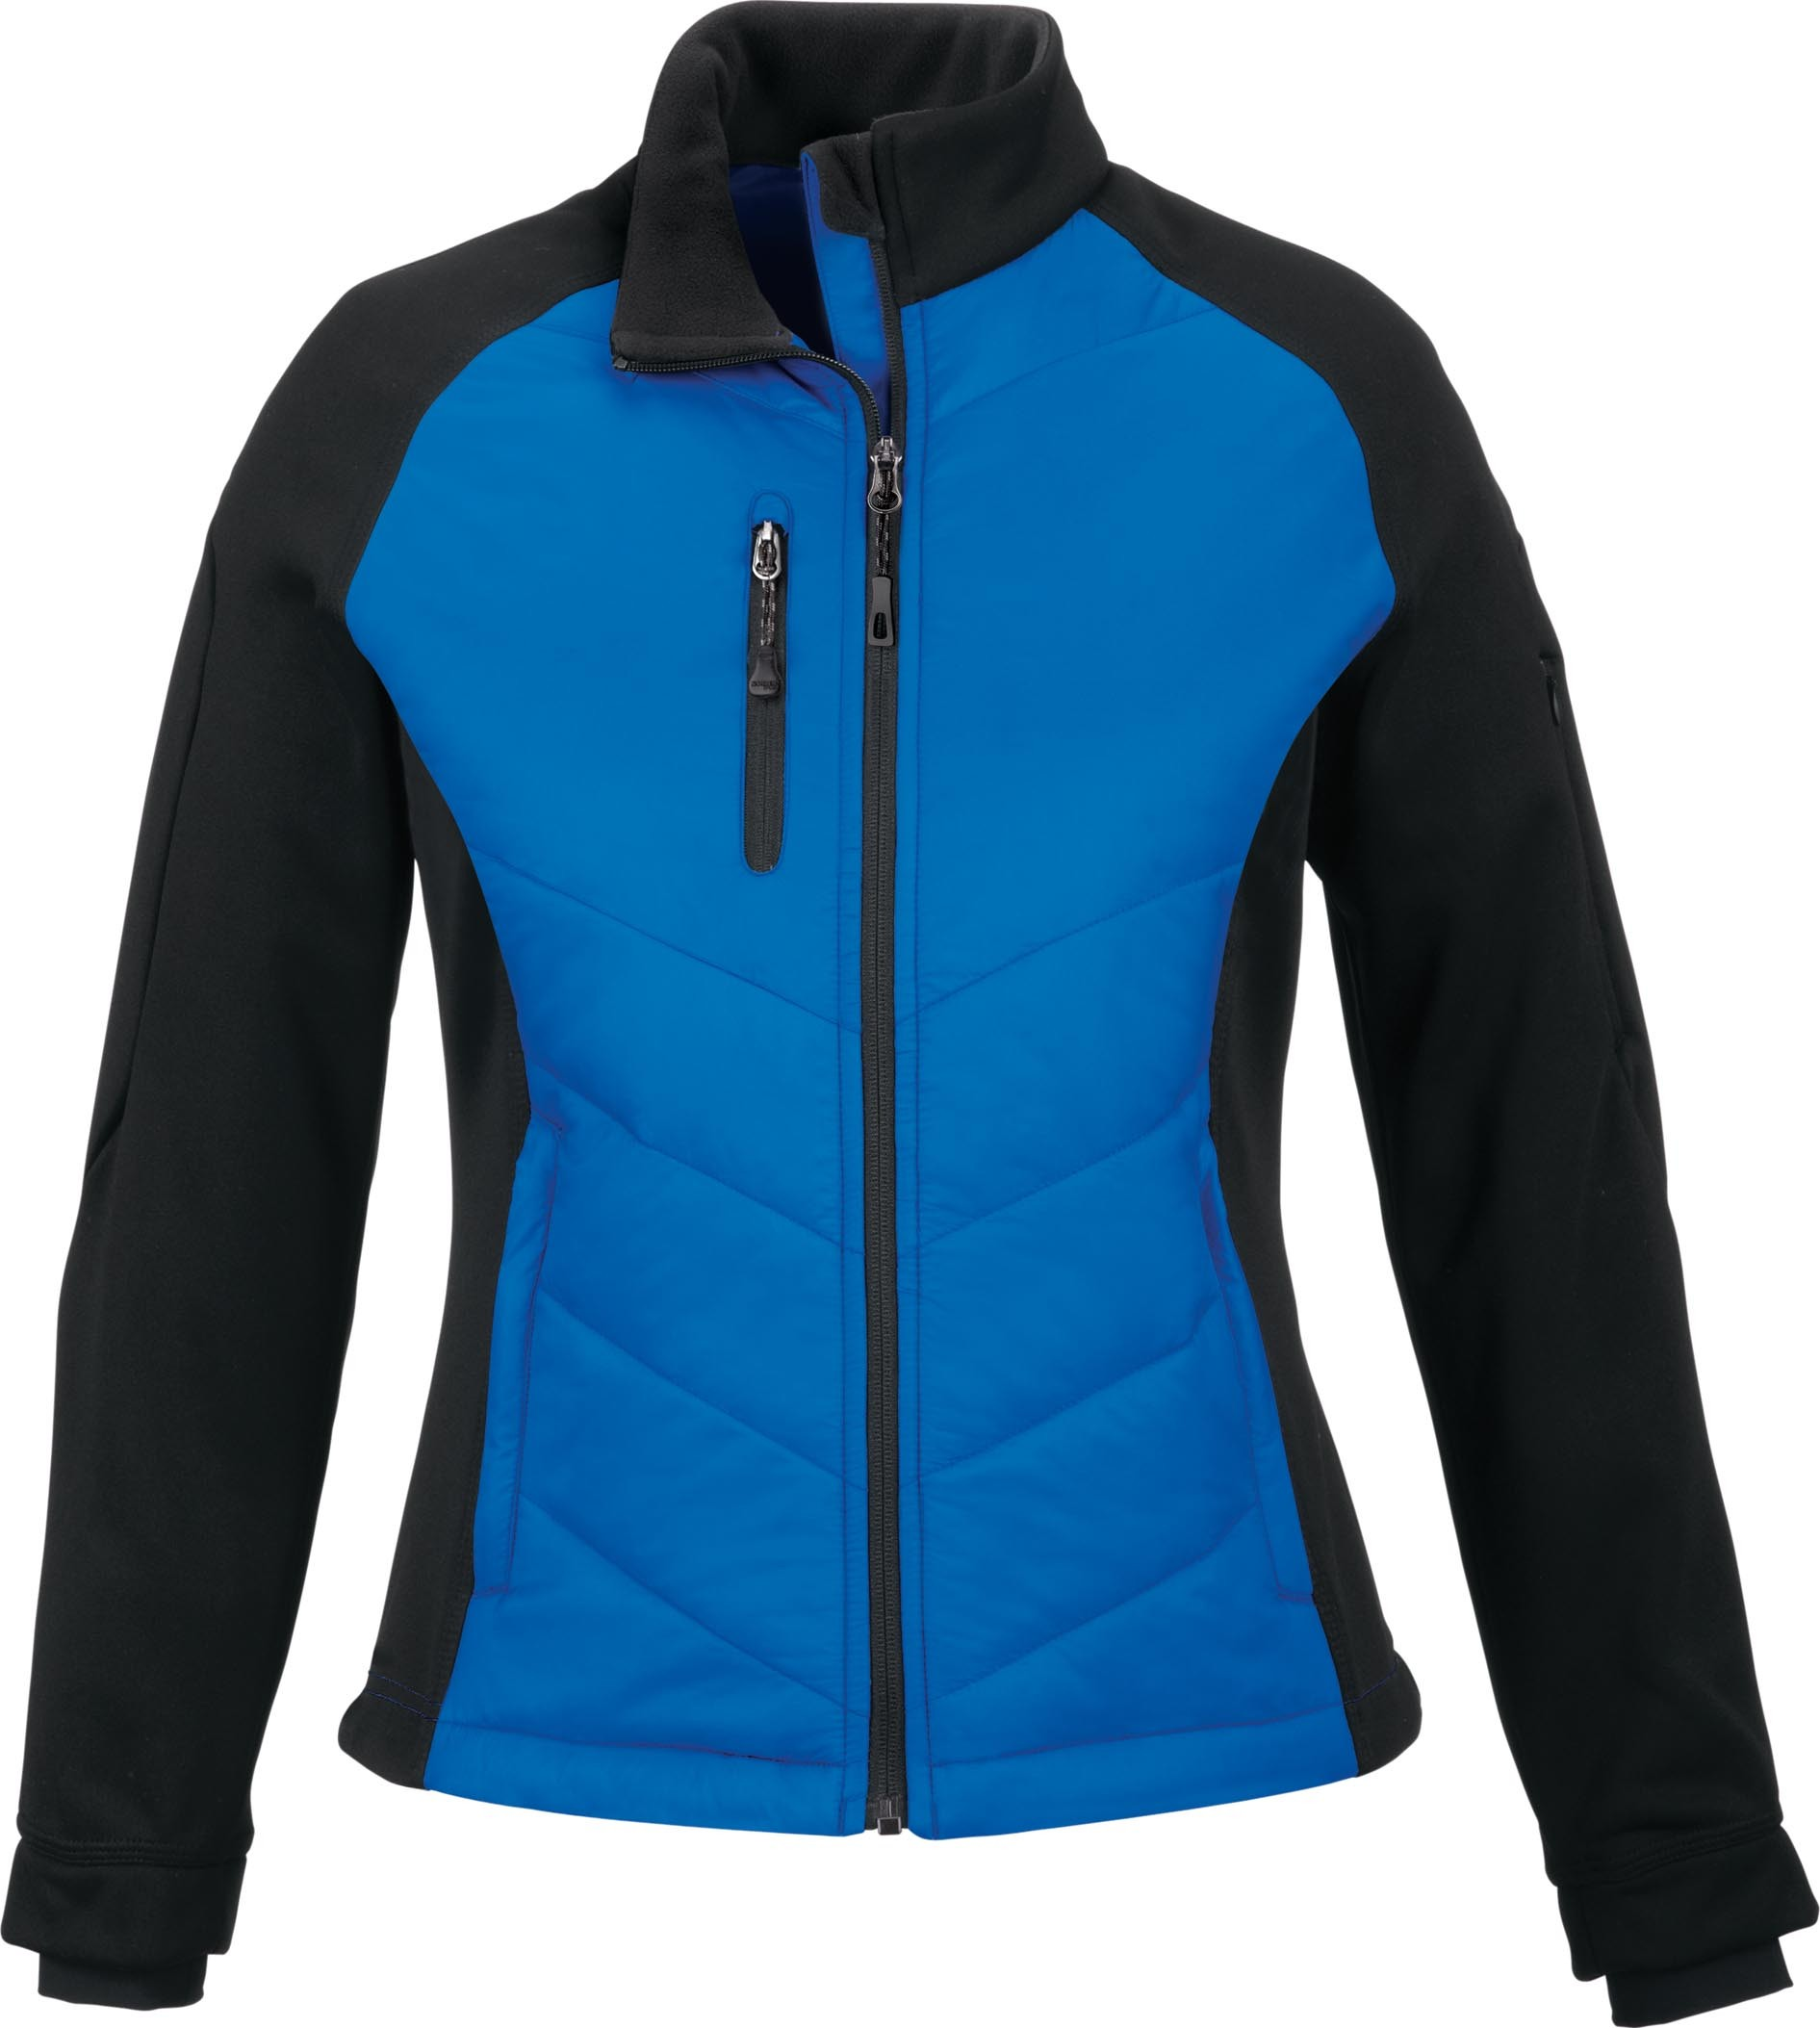 Ash City UTK 1 Warm.Logik 78662 - Epic Ladies' Insulated ...